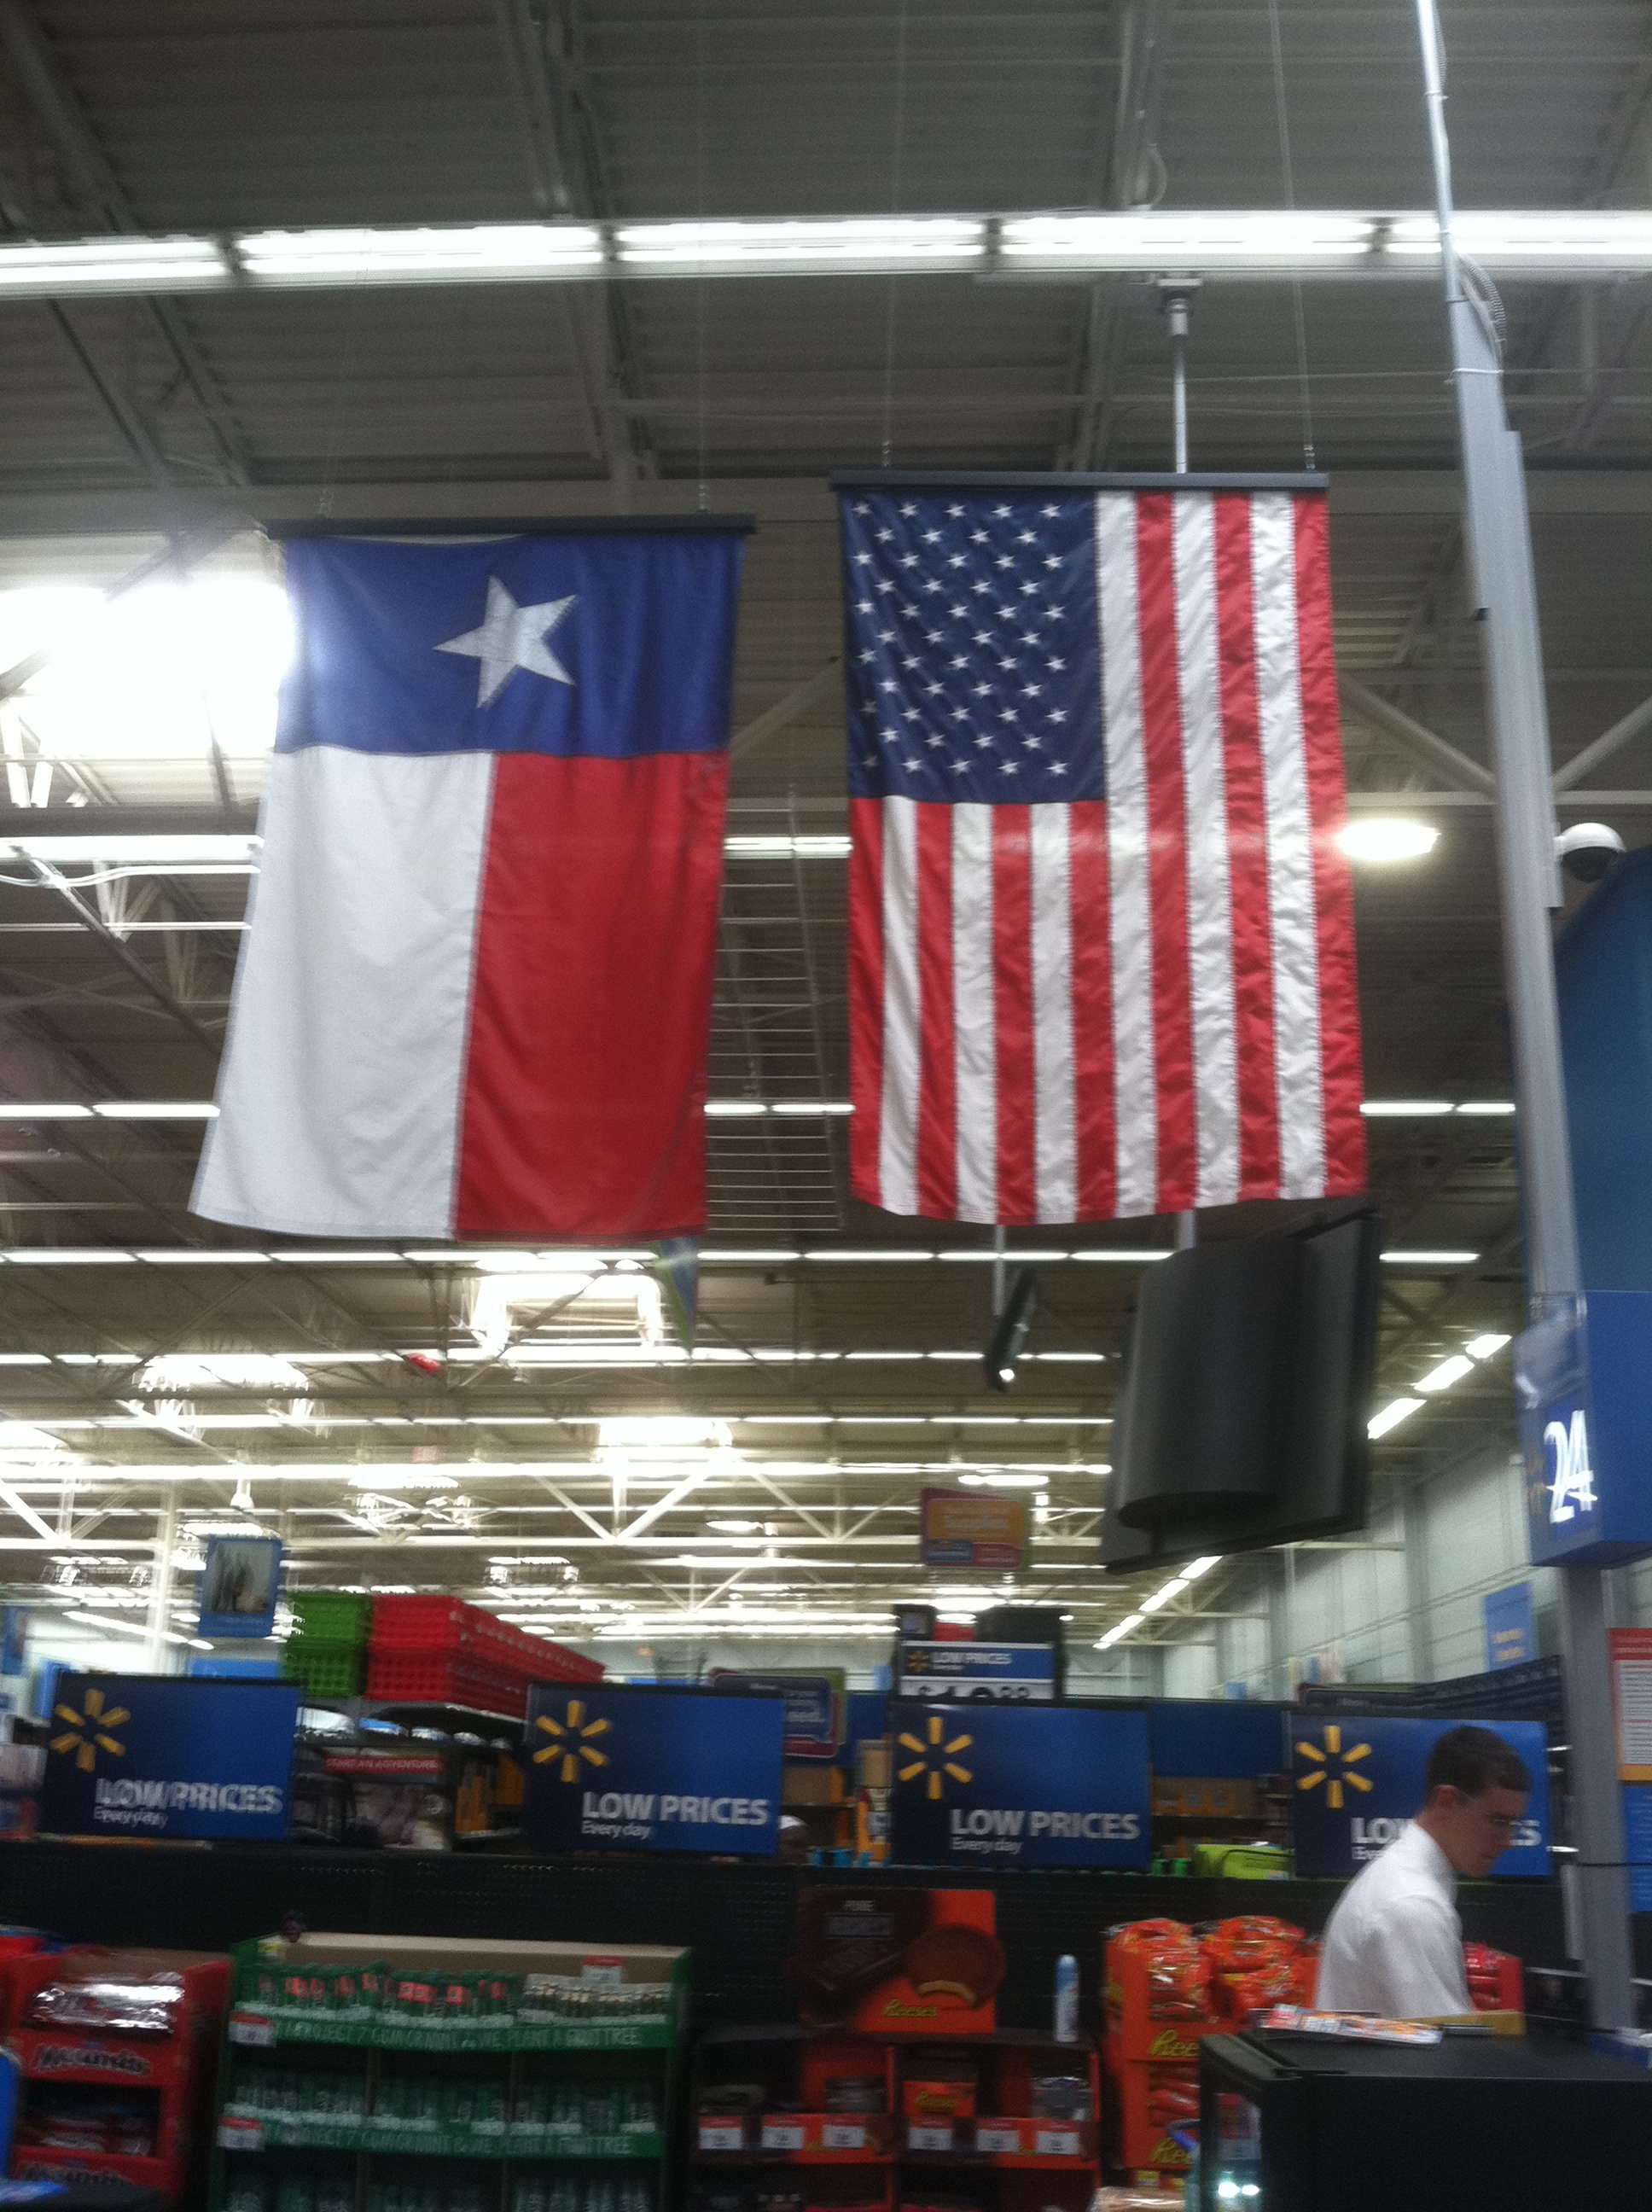 Flag Etiquette Cowboys Wal Mart Fail On Flag Flying Millard